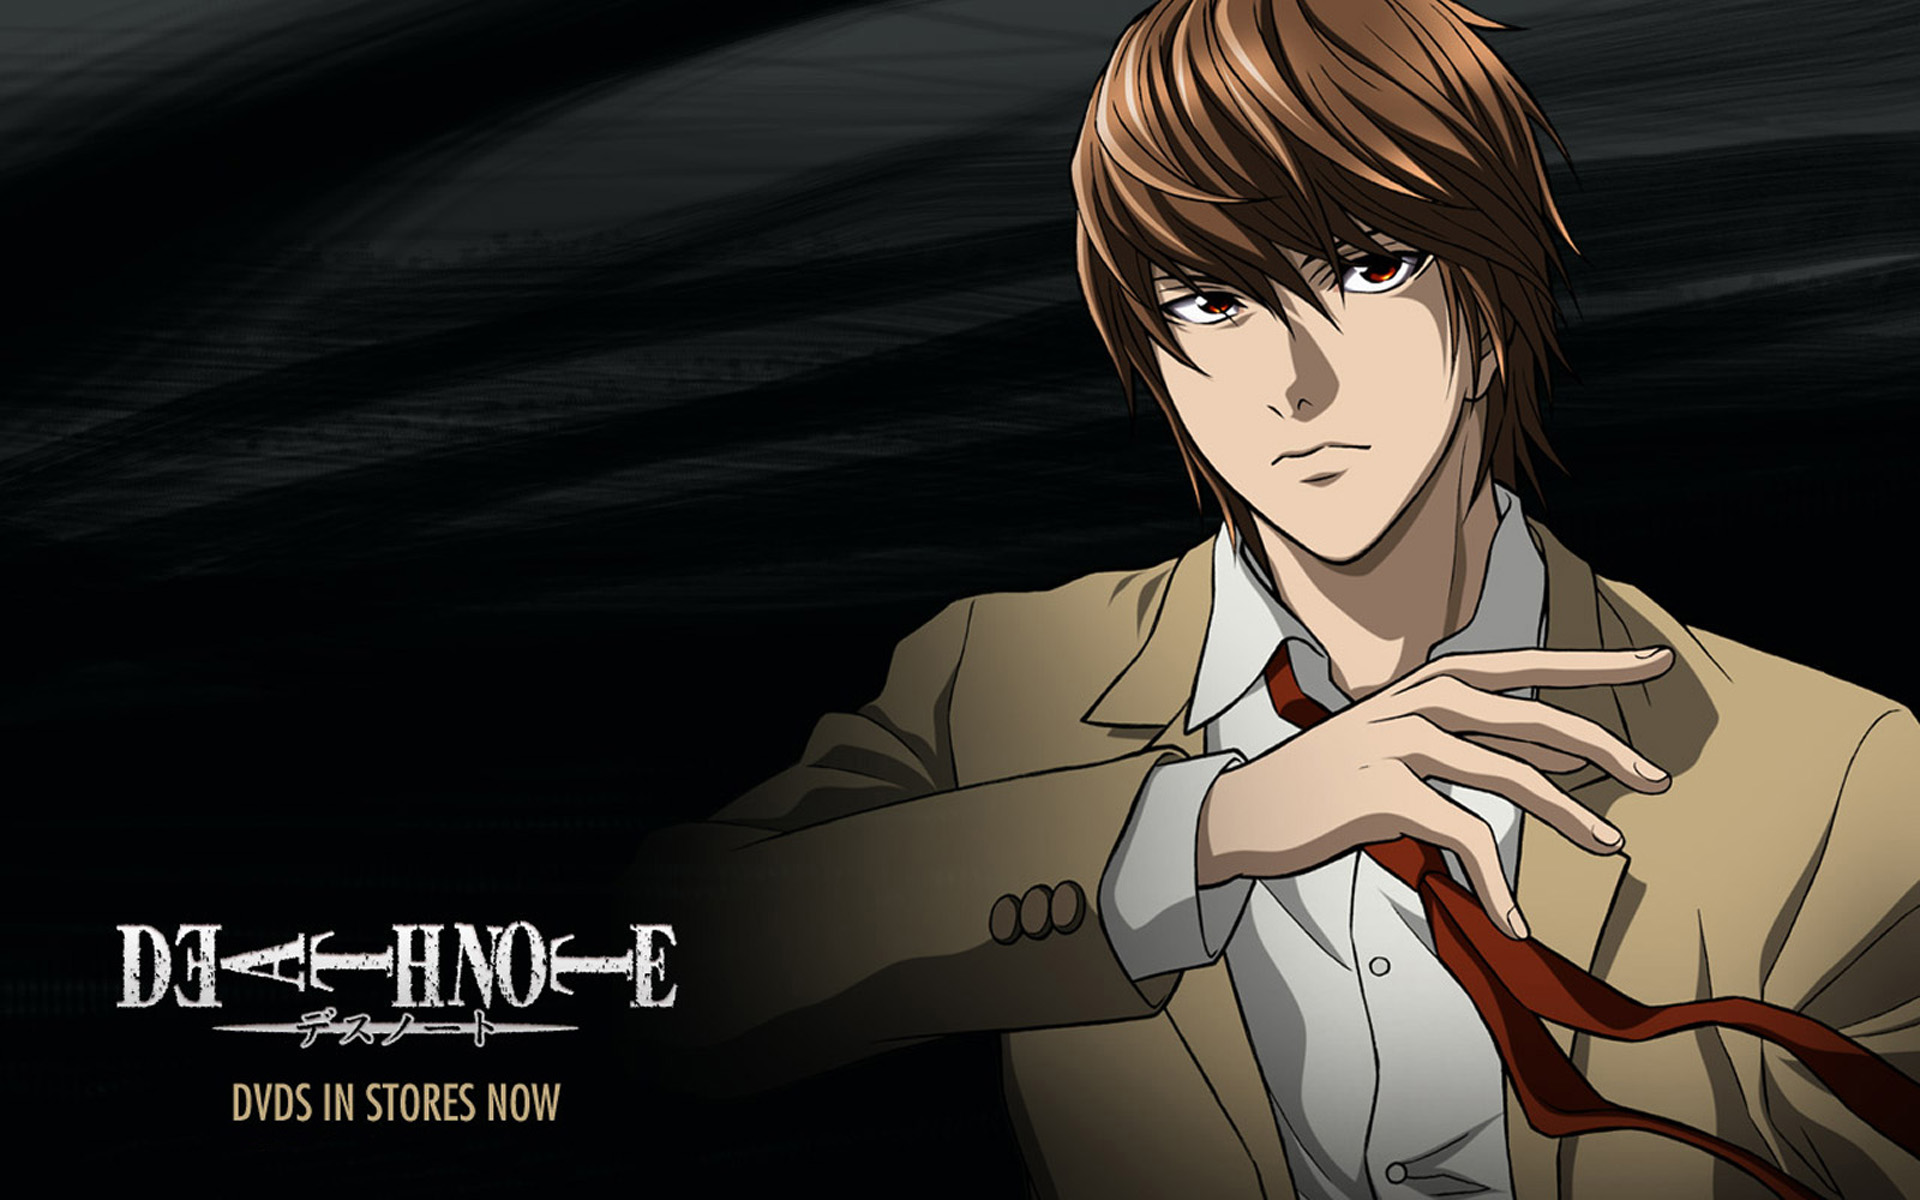 Light Yagami Wallpaper 1920x1200 Wallpapers 1920x1200 1920x1200